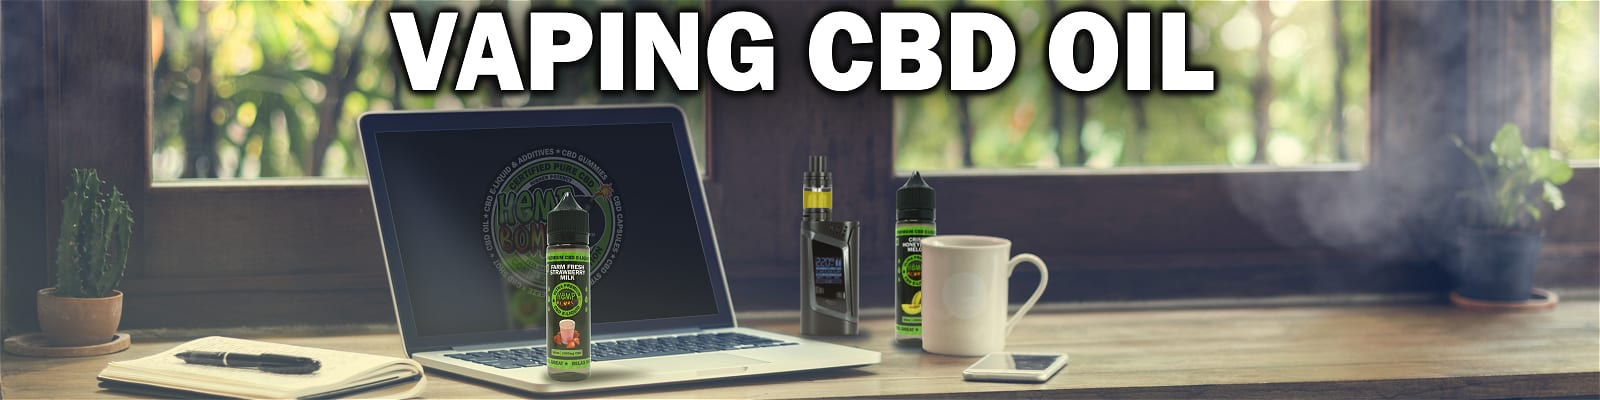 Vaping CBD Oil with two CBD e-liquid bottles and a vaping device on a desk with smoke in the frame